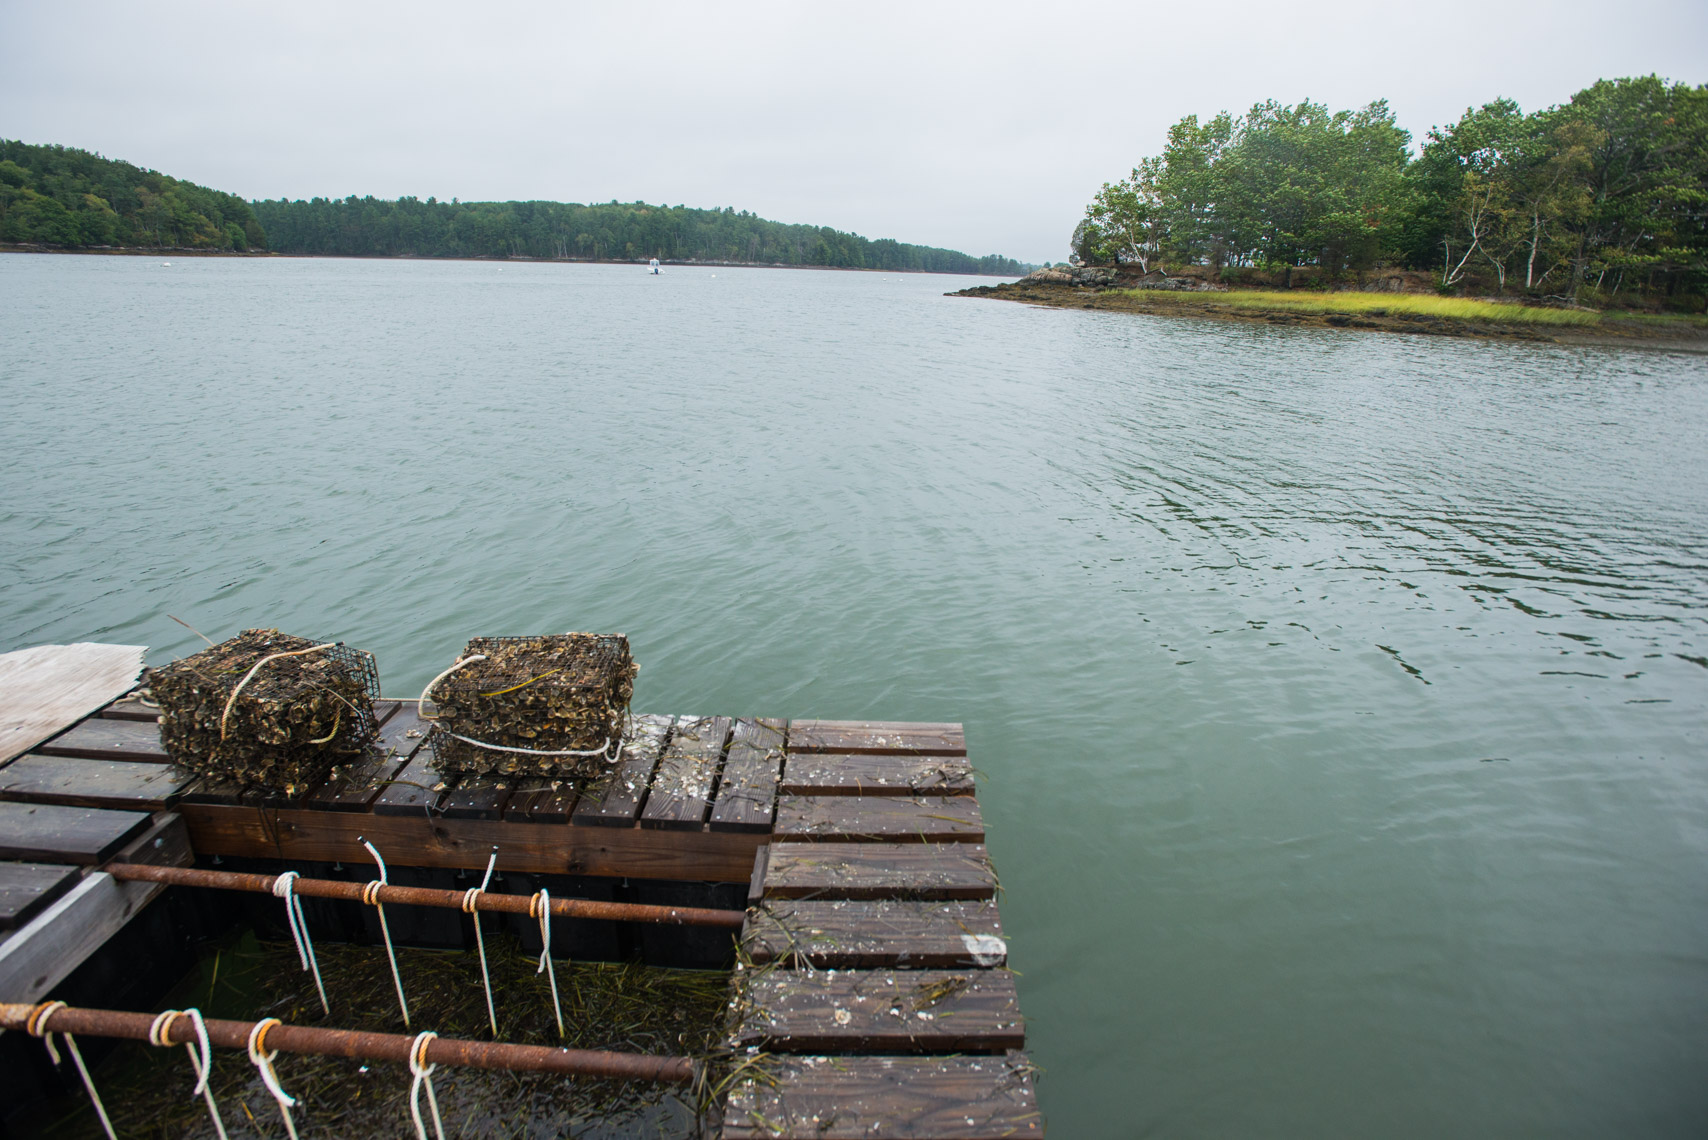 Dock used for growing oysters